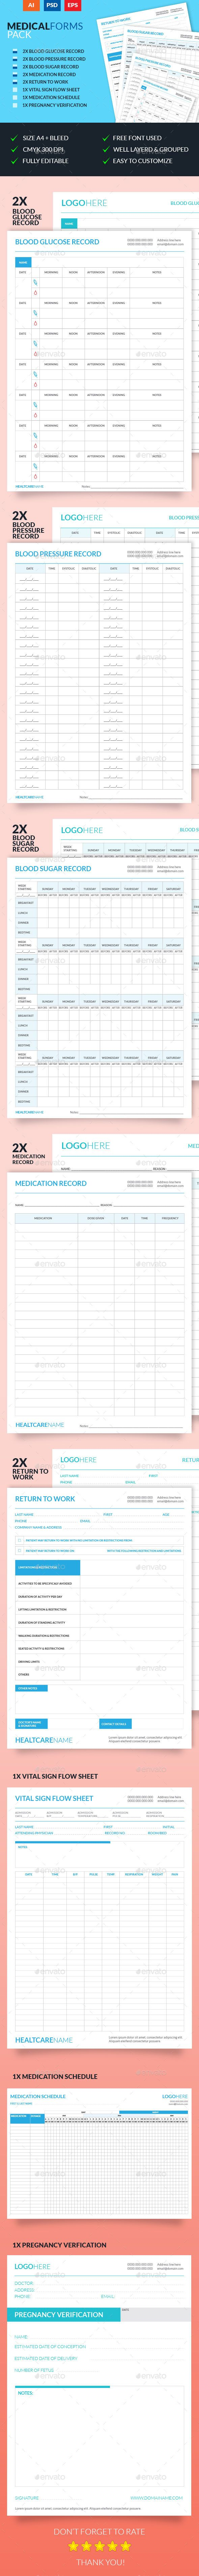 Medical Forms Pack  Medical Psd Templates And Photoshop